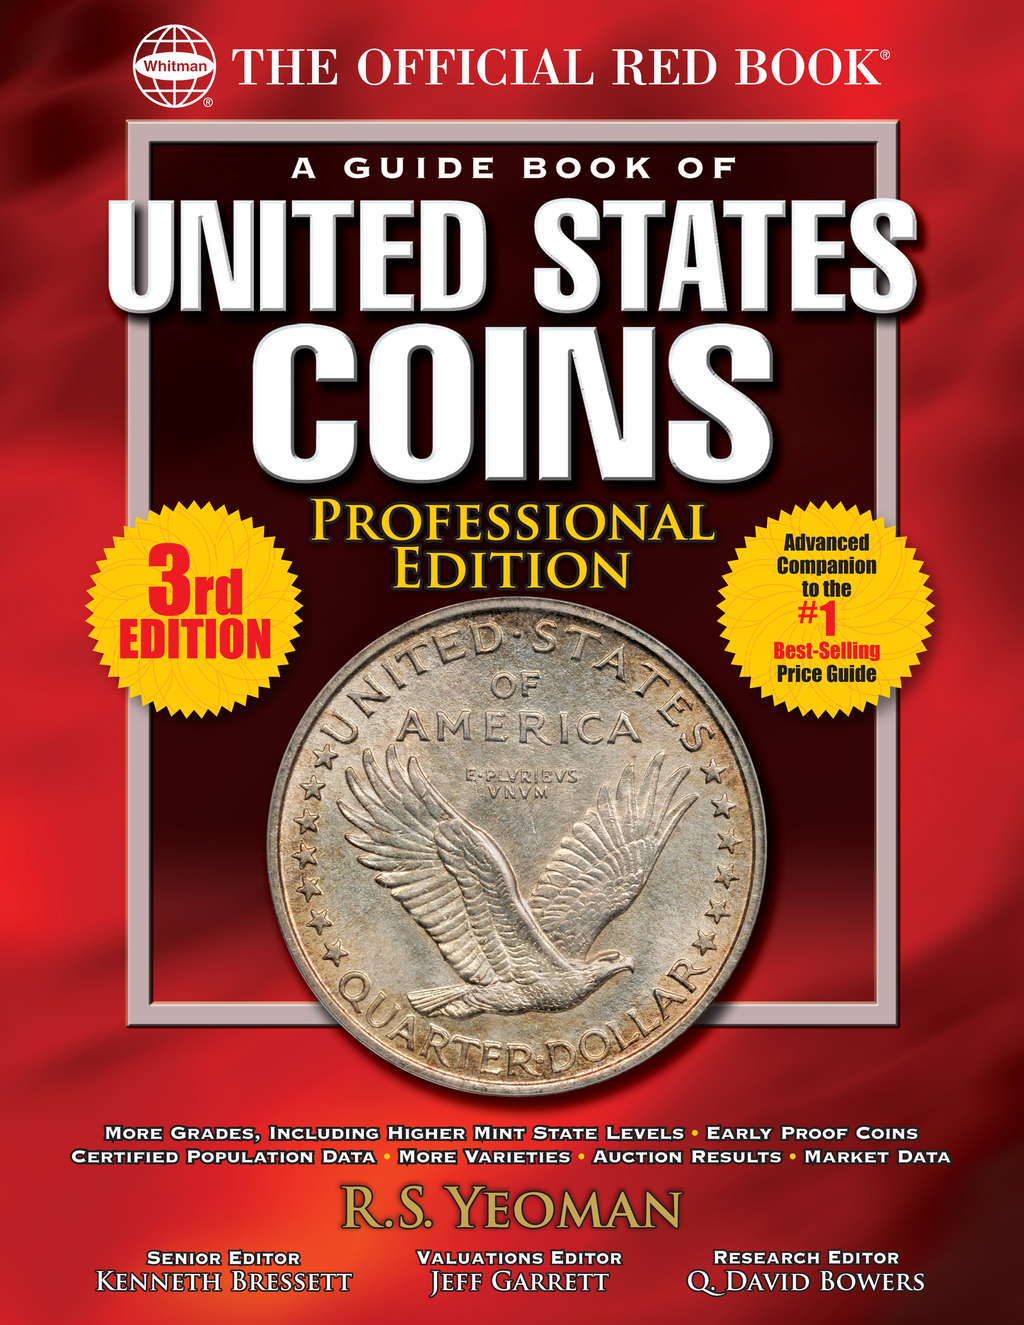 The Official Red Book: A Guide Book of United States Coins, Professional Edition